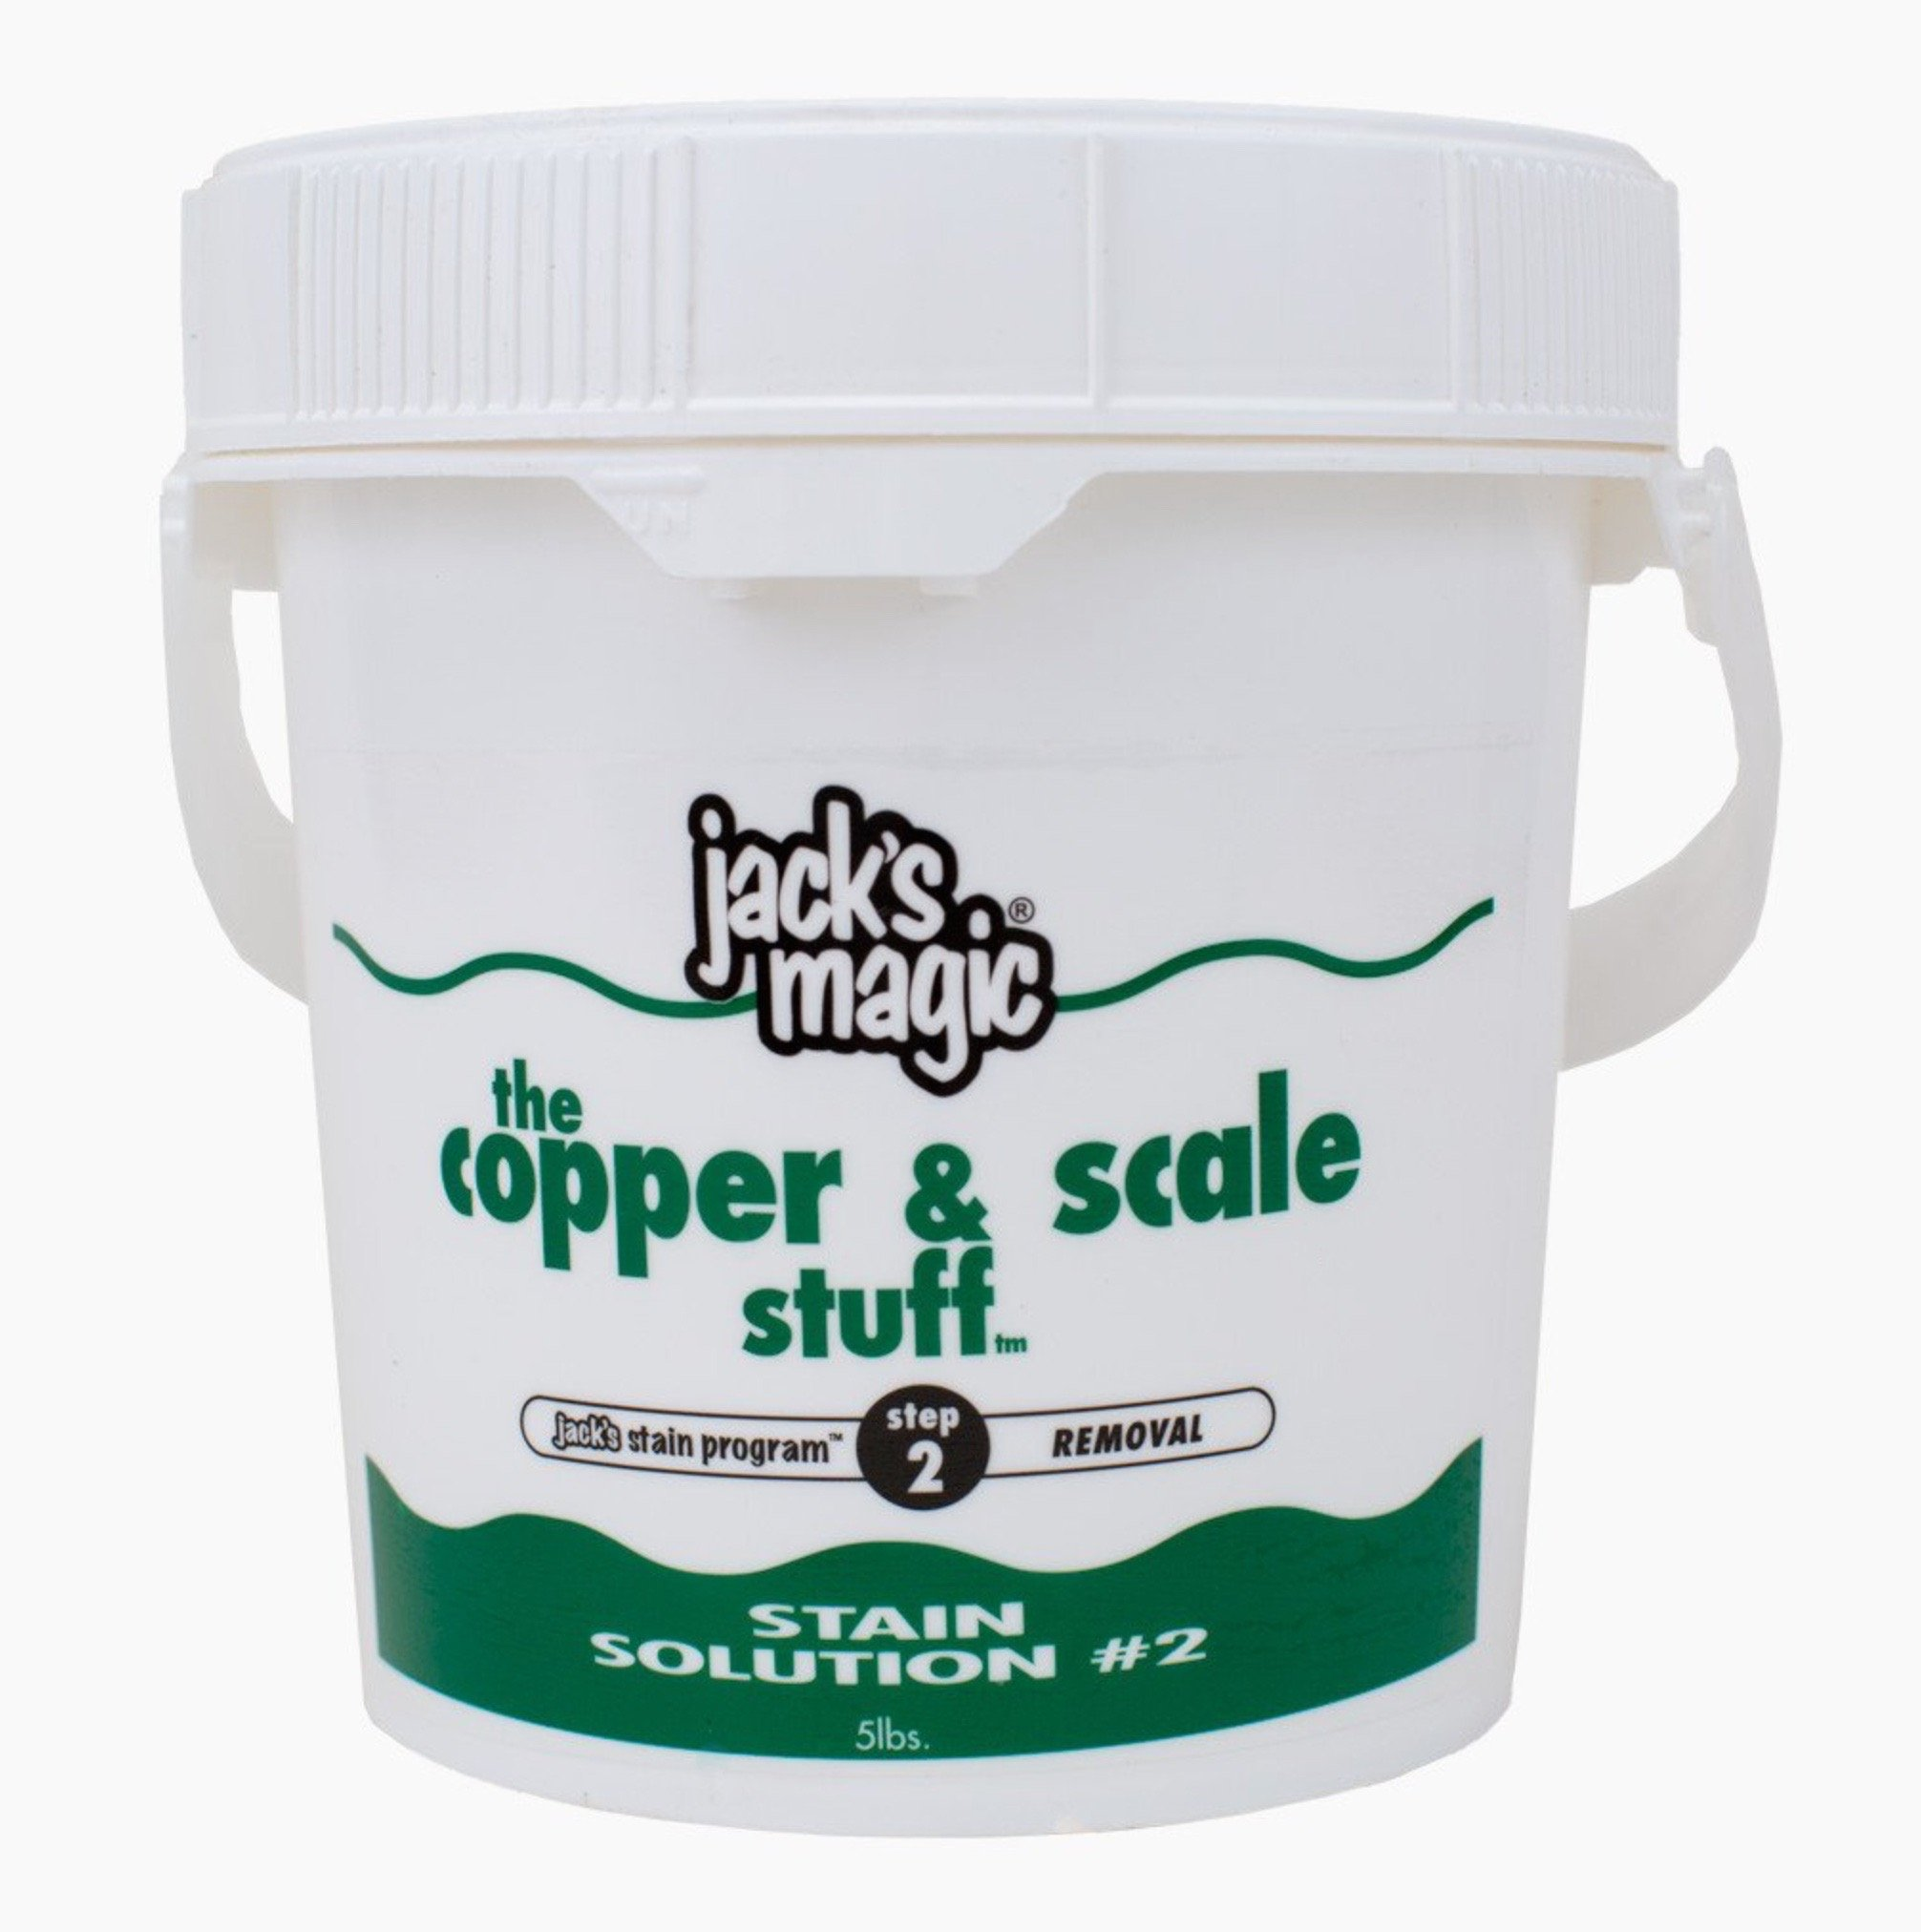 Jack's Magic The Copper & Scale Stuff Stain Solution 2 (5 lb) (2 Pack) by Jack's Magic Products